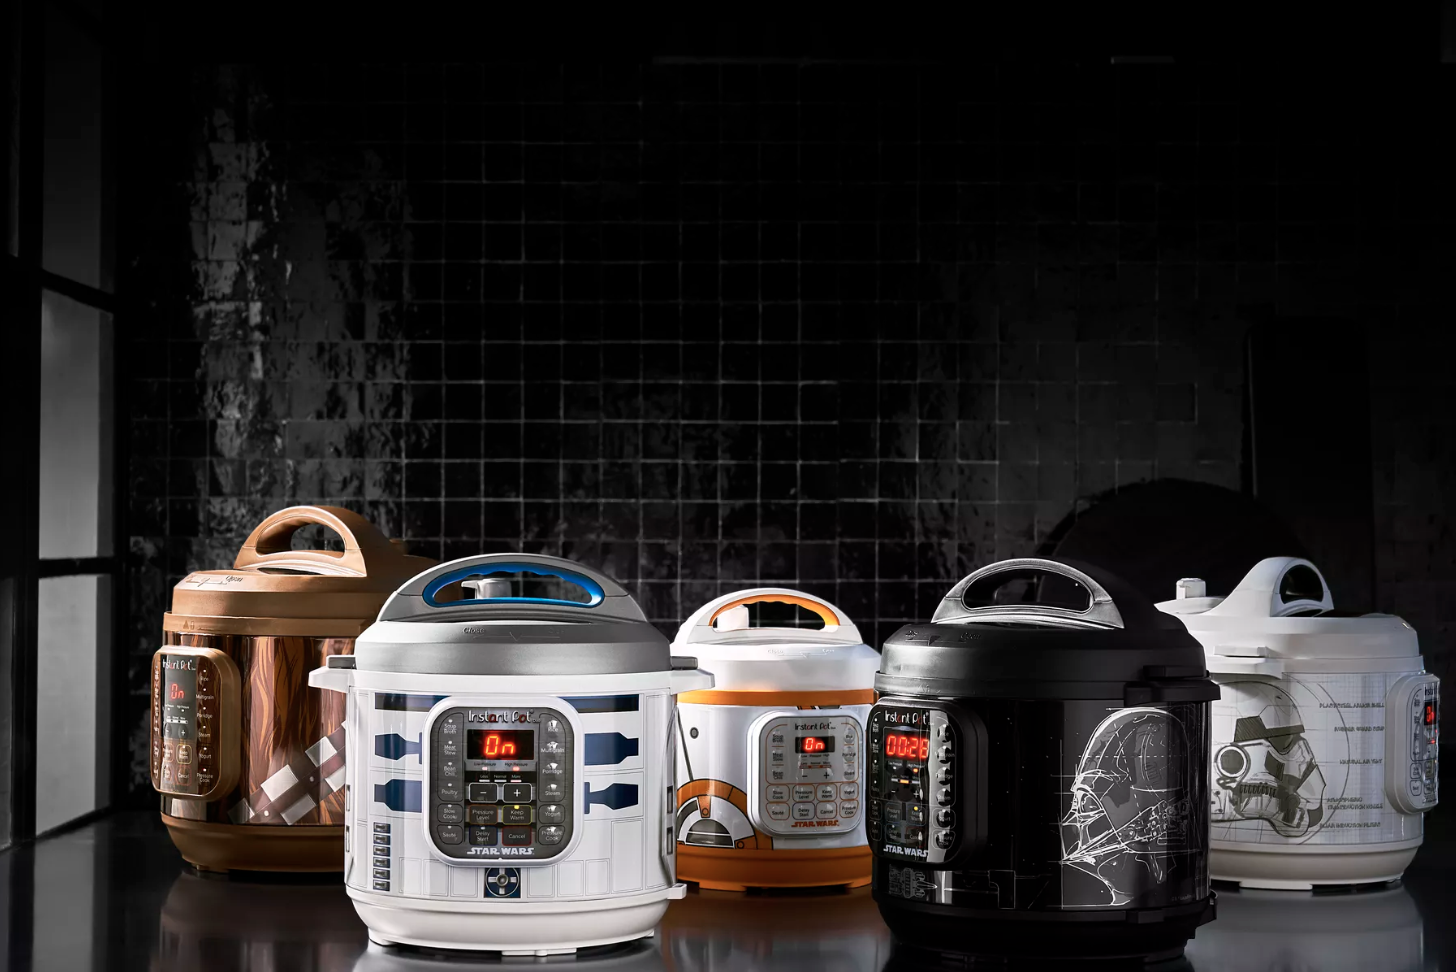 A New Instant Pot Gets Us Closer To An Entire 'Star Wars' Kitchen